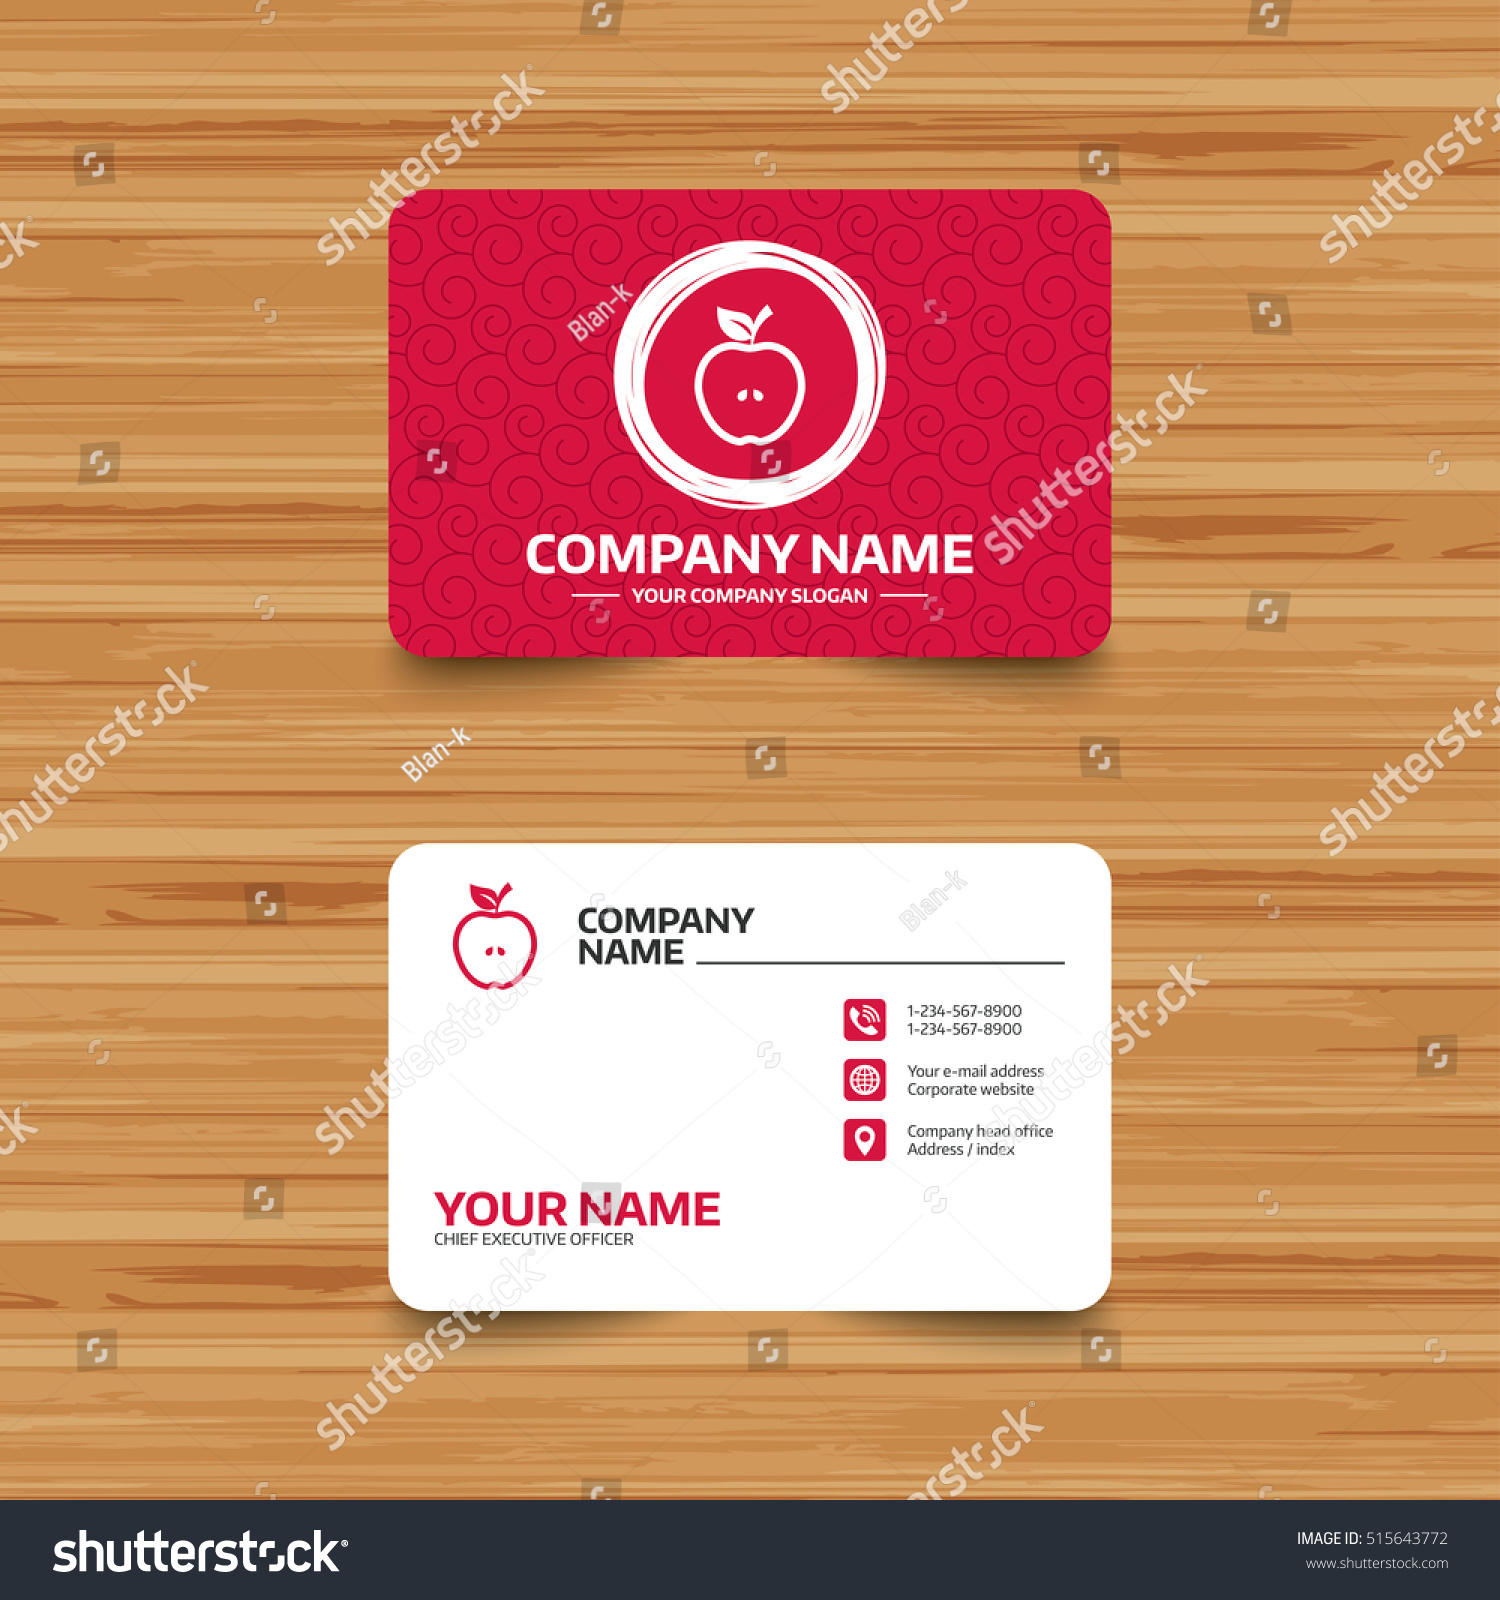 Business card template texture apple sign stock vector 515643772 business card template with texture apple sign icon fruit with leaf symbol phone reheart